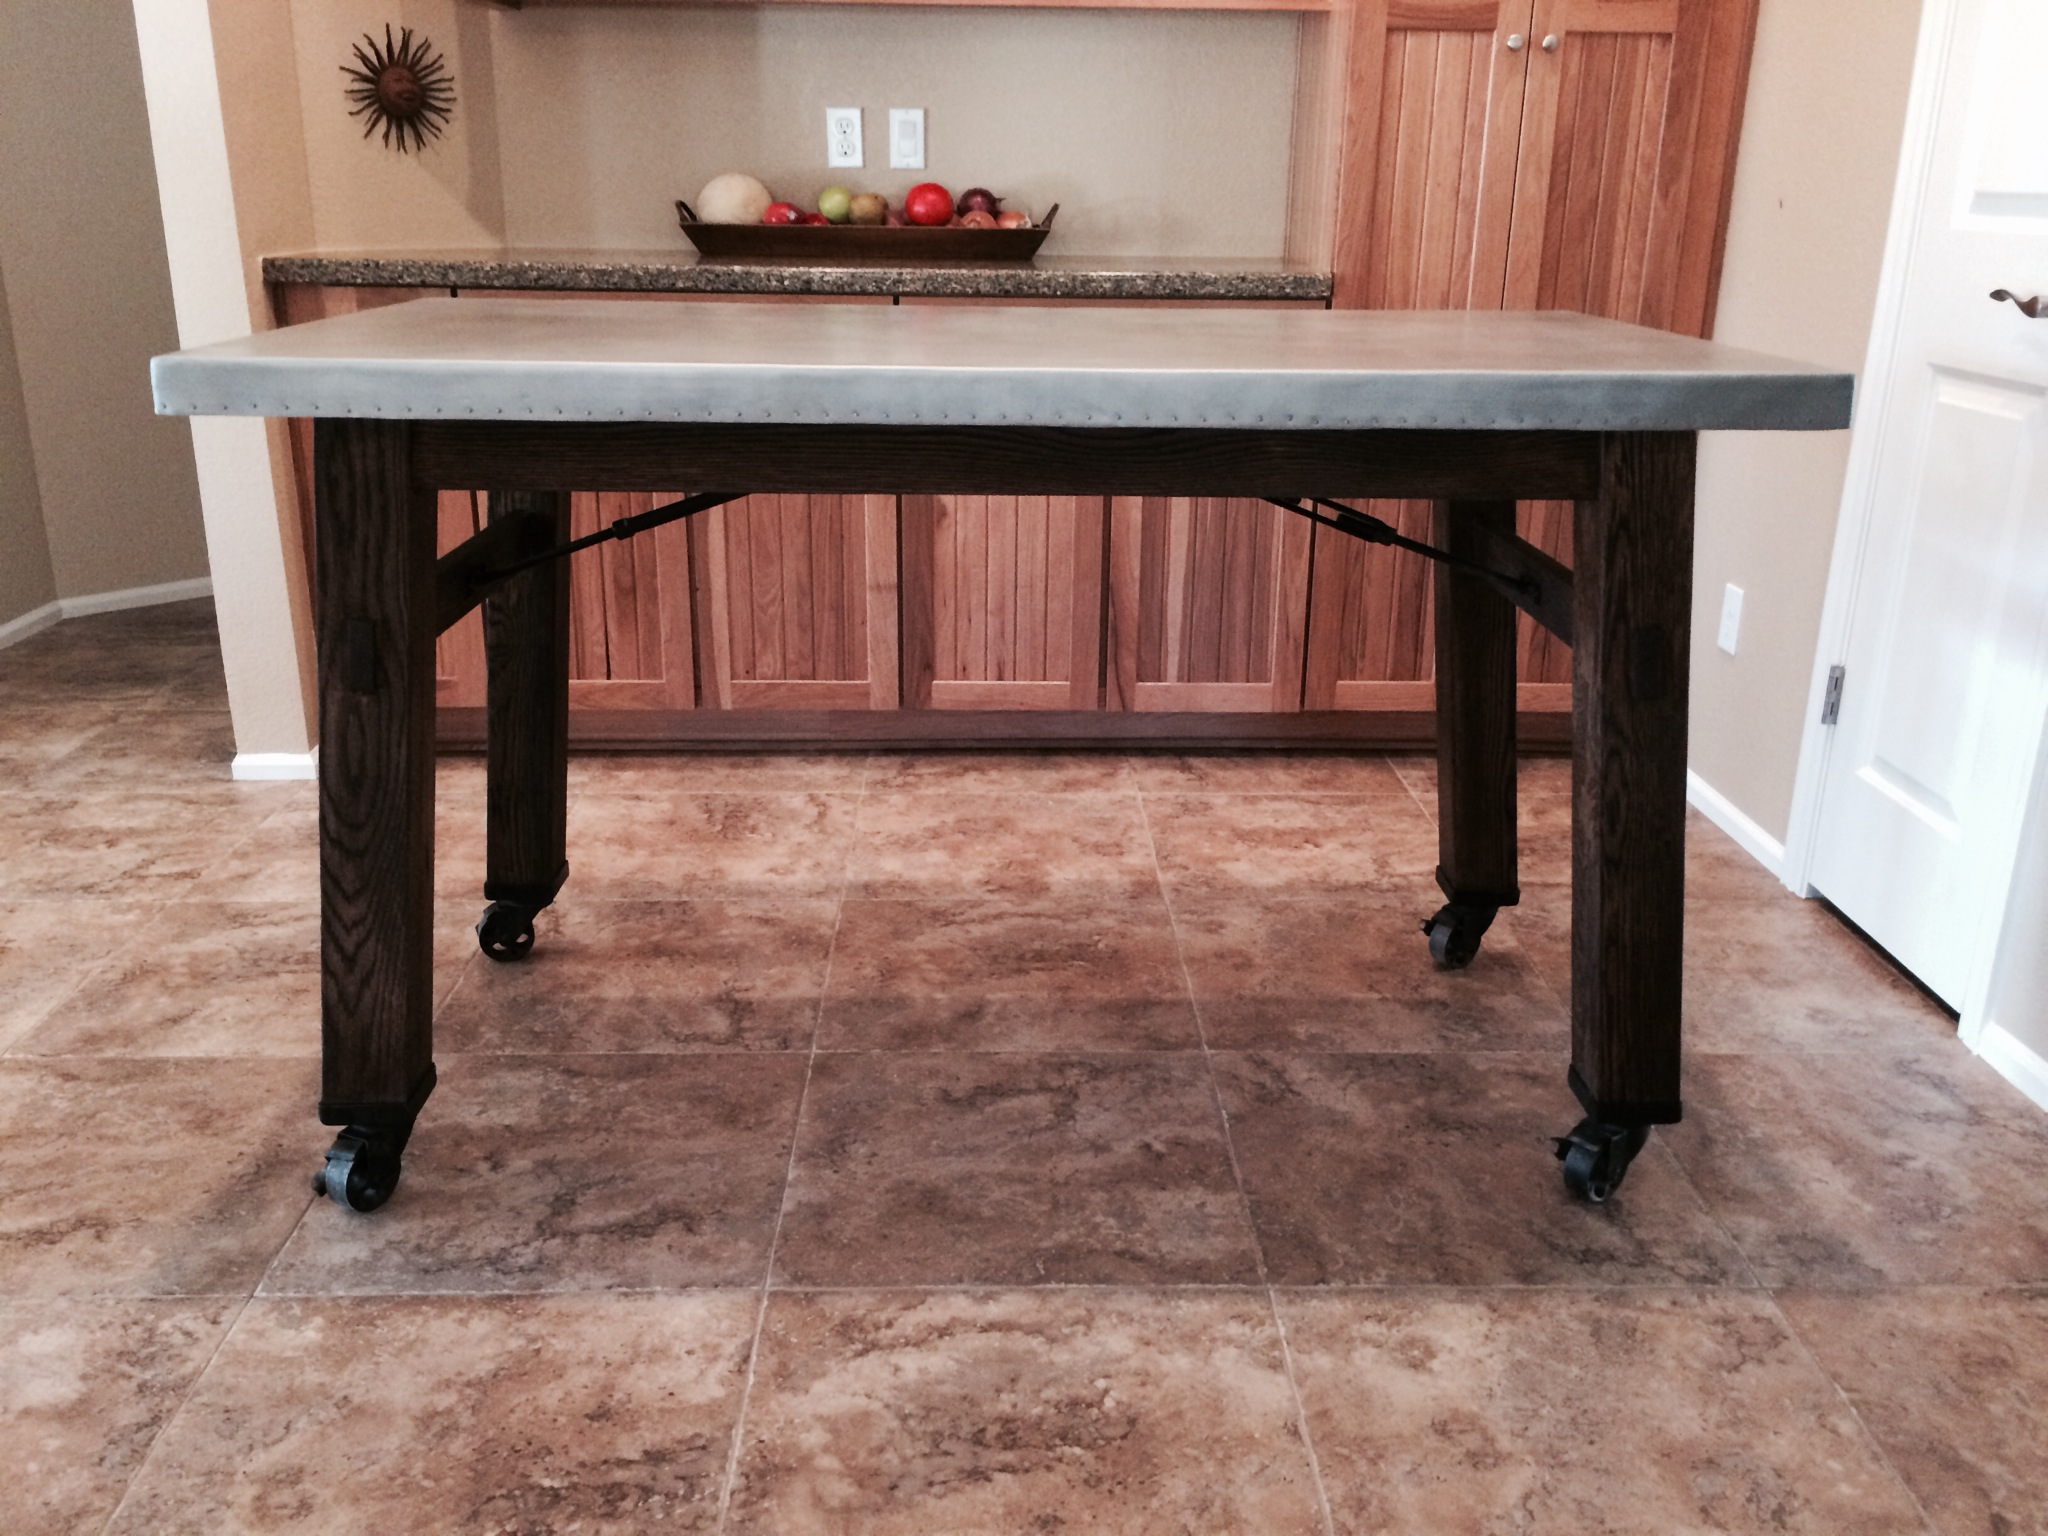 zinc table top with wood legs and casters